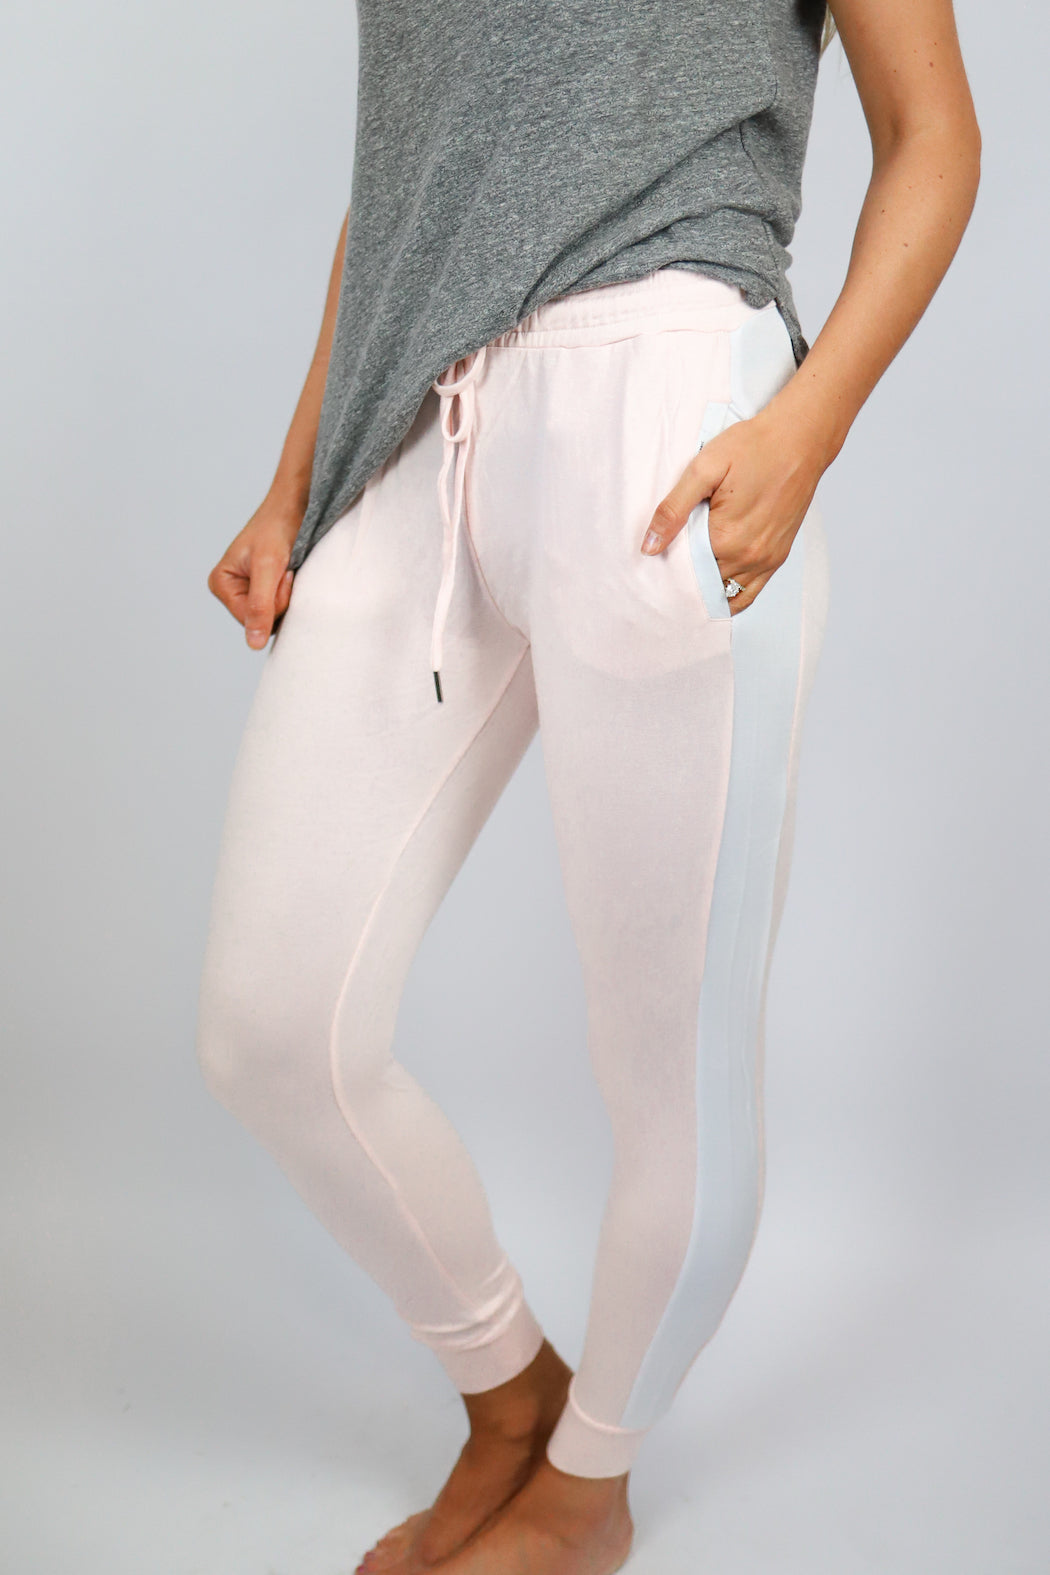 THE LAUNDRY ROOM - Elevens Sweat Pant